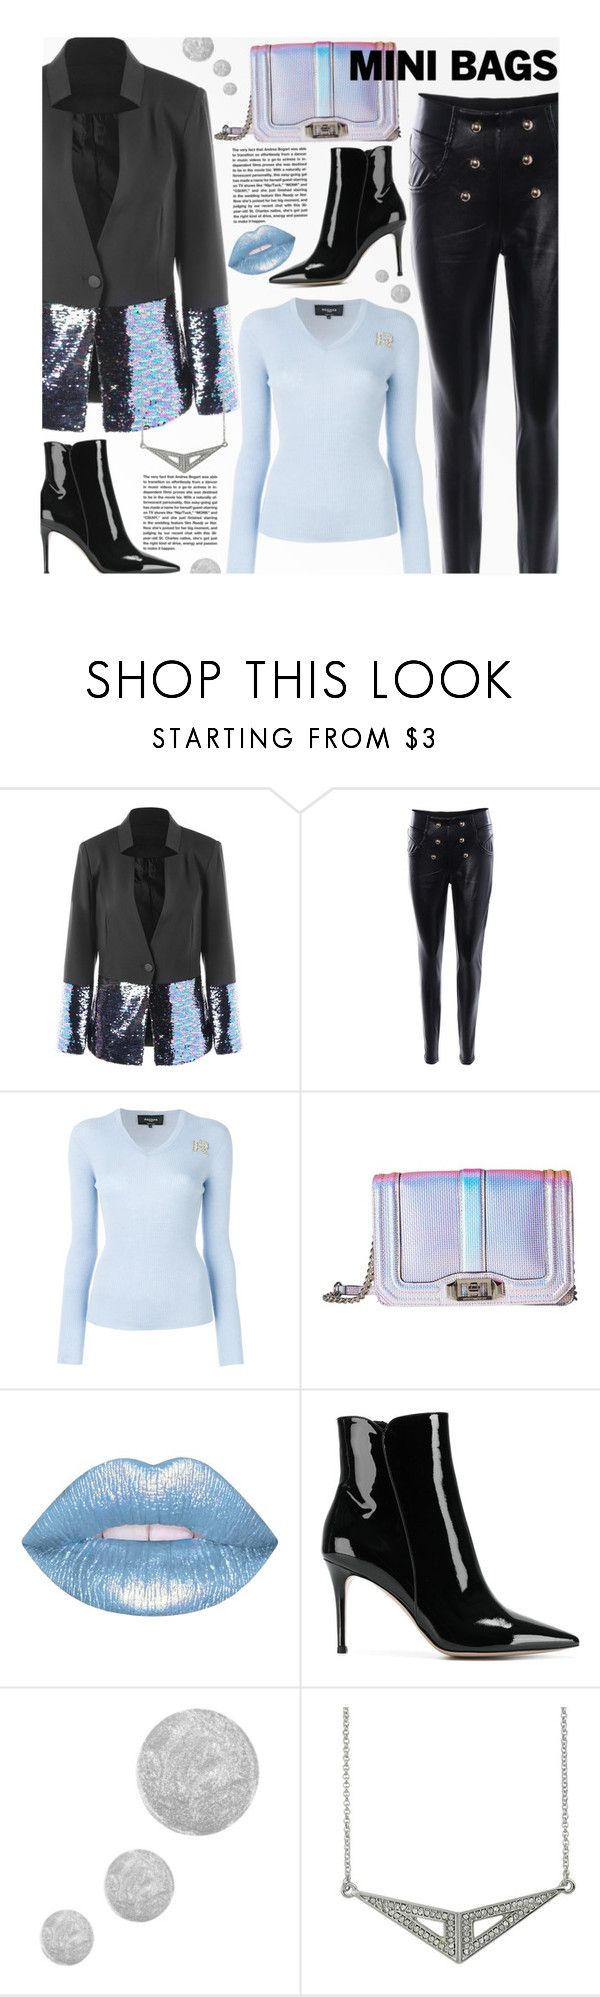 """""""So Cute: Mini Bags"""" by beebeely-look ❤ liked on Polyvore featuring Rochas, Rebecca Minkoff, Lime Crime, Gianvito Rossi, Andrea, Topshop, Heels, Sequins, fallfashion and minibags"""